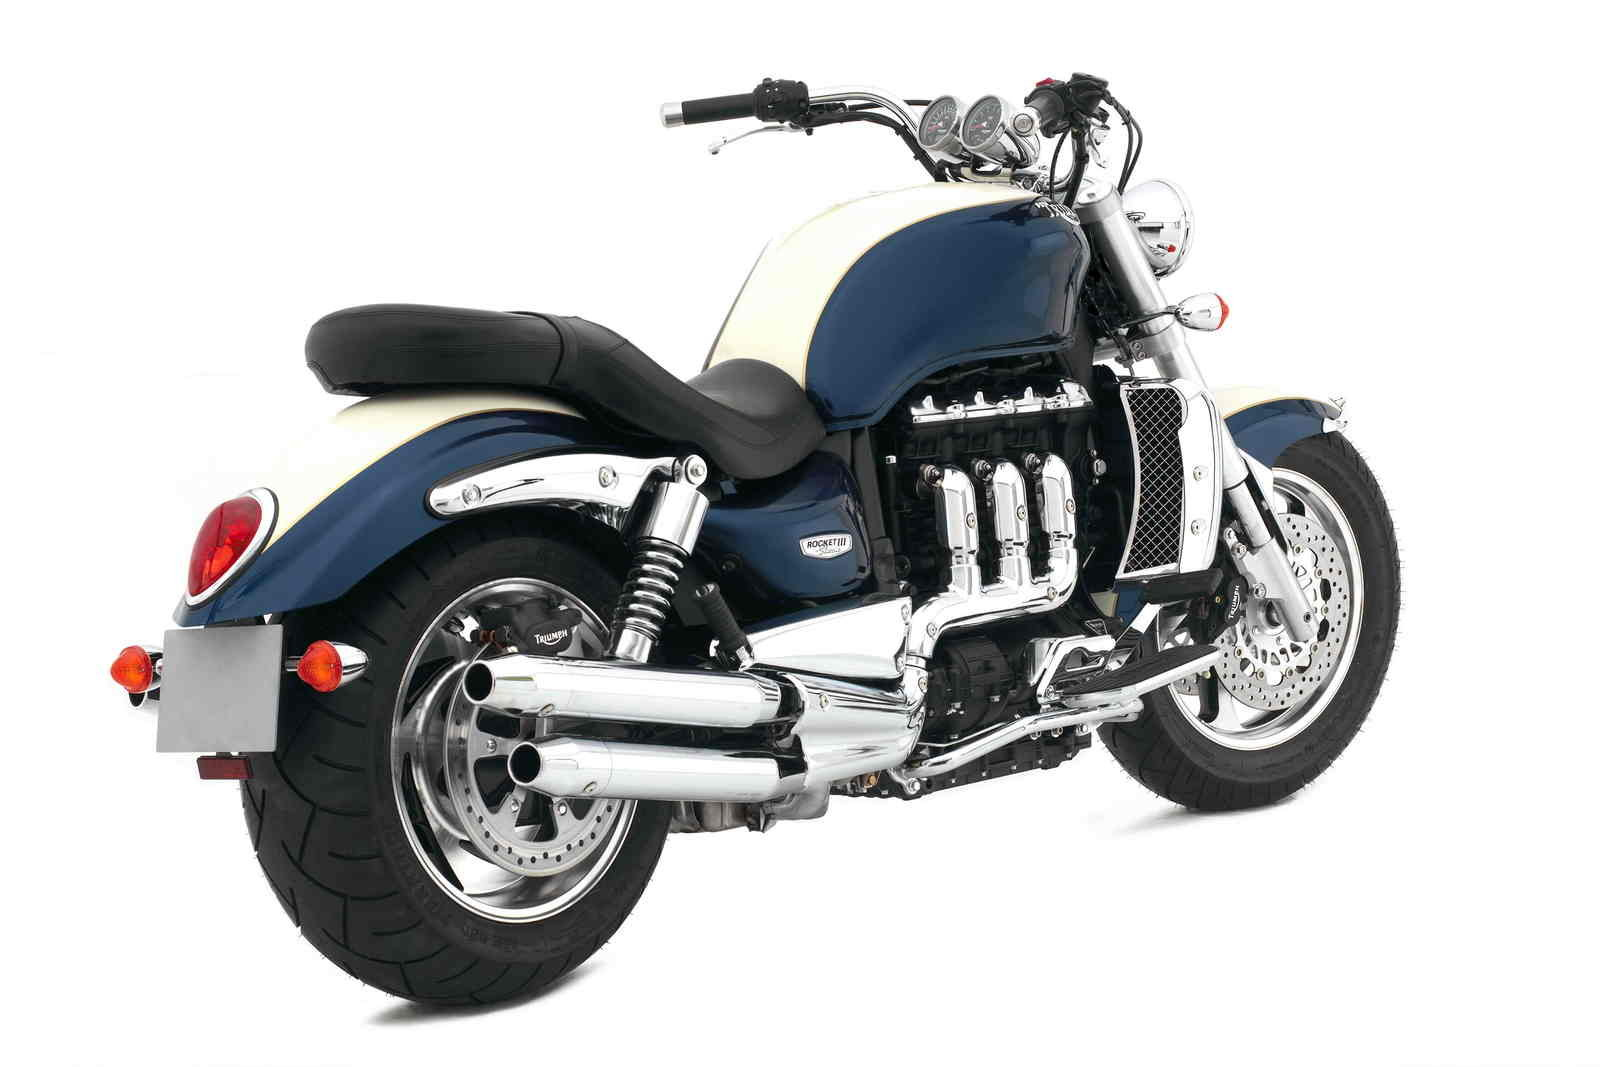 2007 triumph rocket iii classic picture 119222 motorcycle review top speed. Black Bedroom Furniture Sets. Home Design Ideas